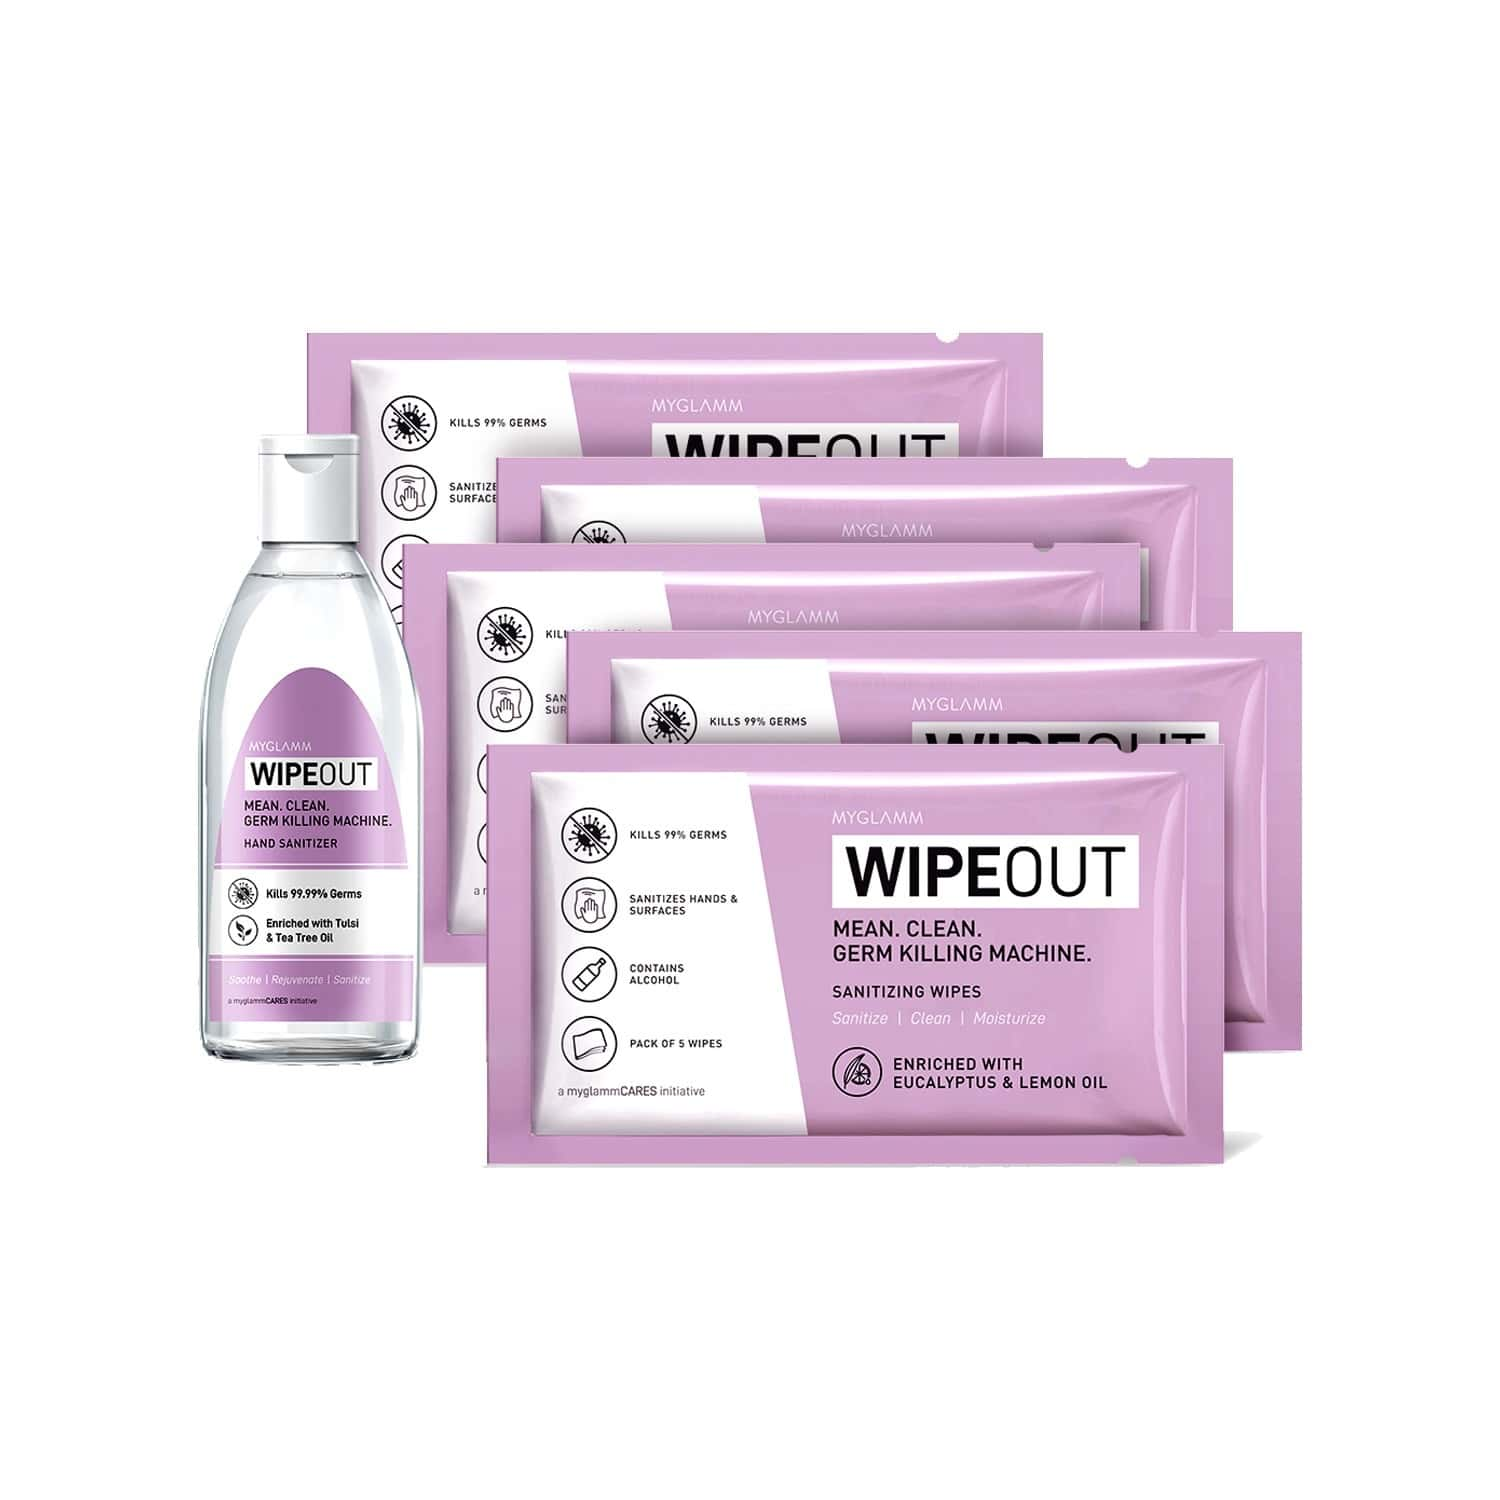 Wipeout  Sanitizing Wipes (5 Packs Of 5 Wipes Each) Packet Of 25 (free Wipeout Hand Sanitizer - 30ml)